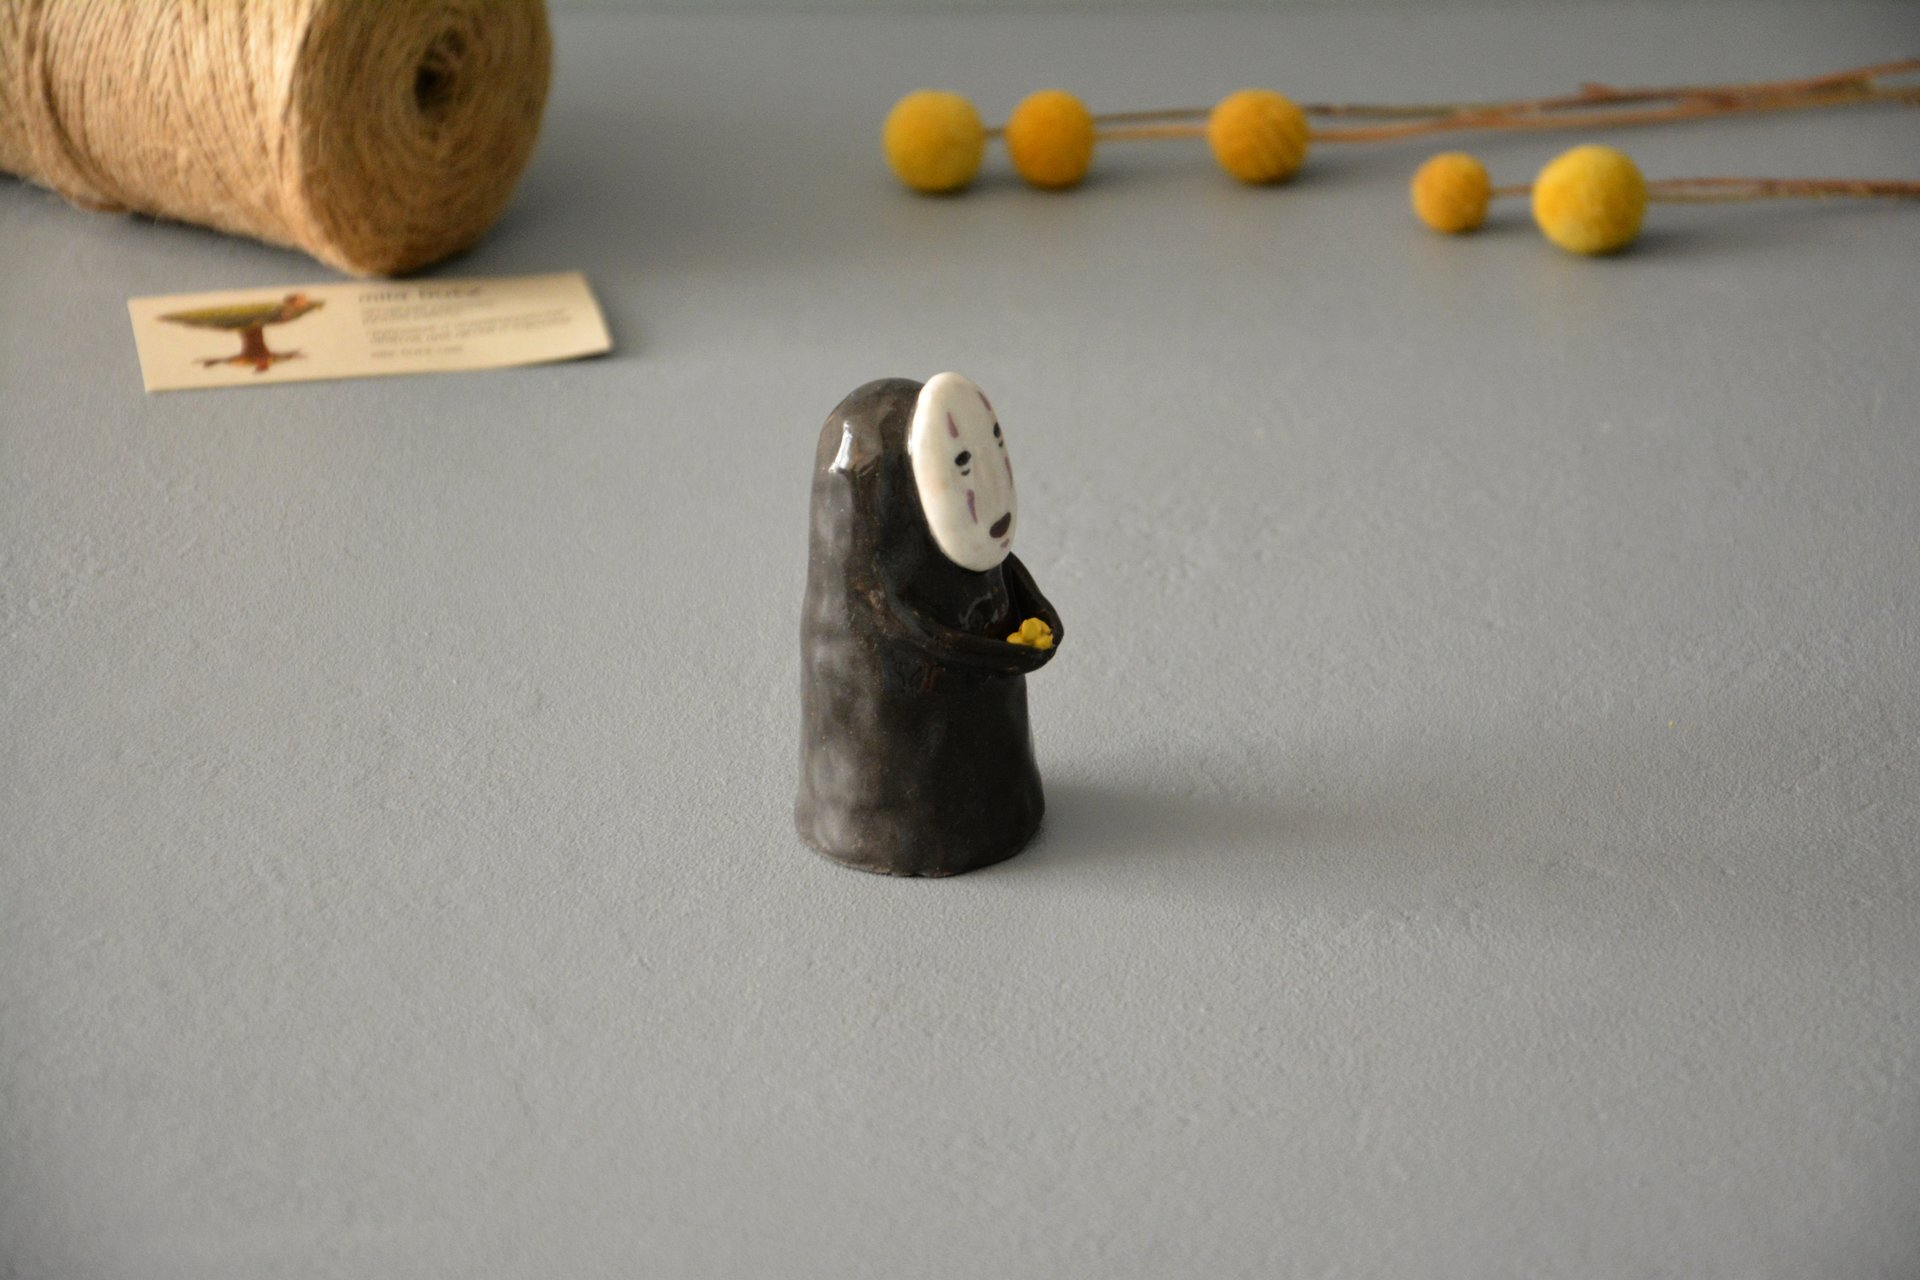 No-Face Kaonashi figurine, height - 8,5 cm, photo 3 of 5.